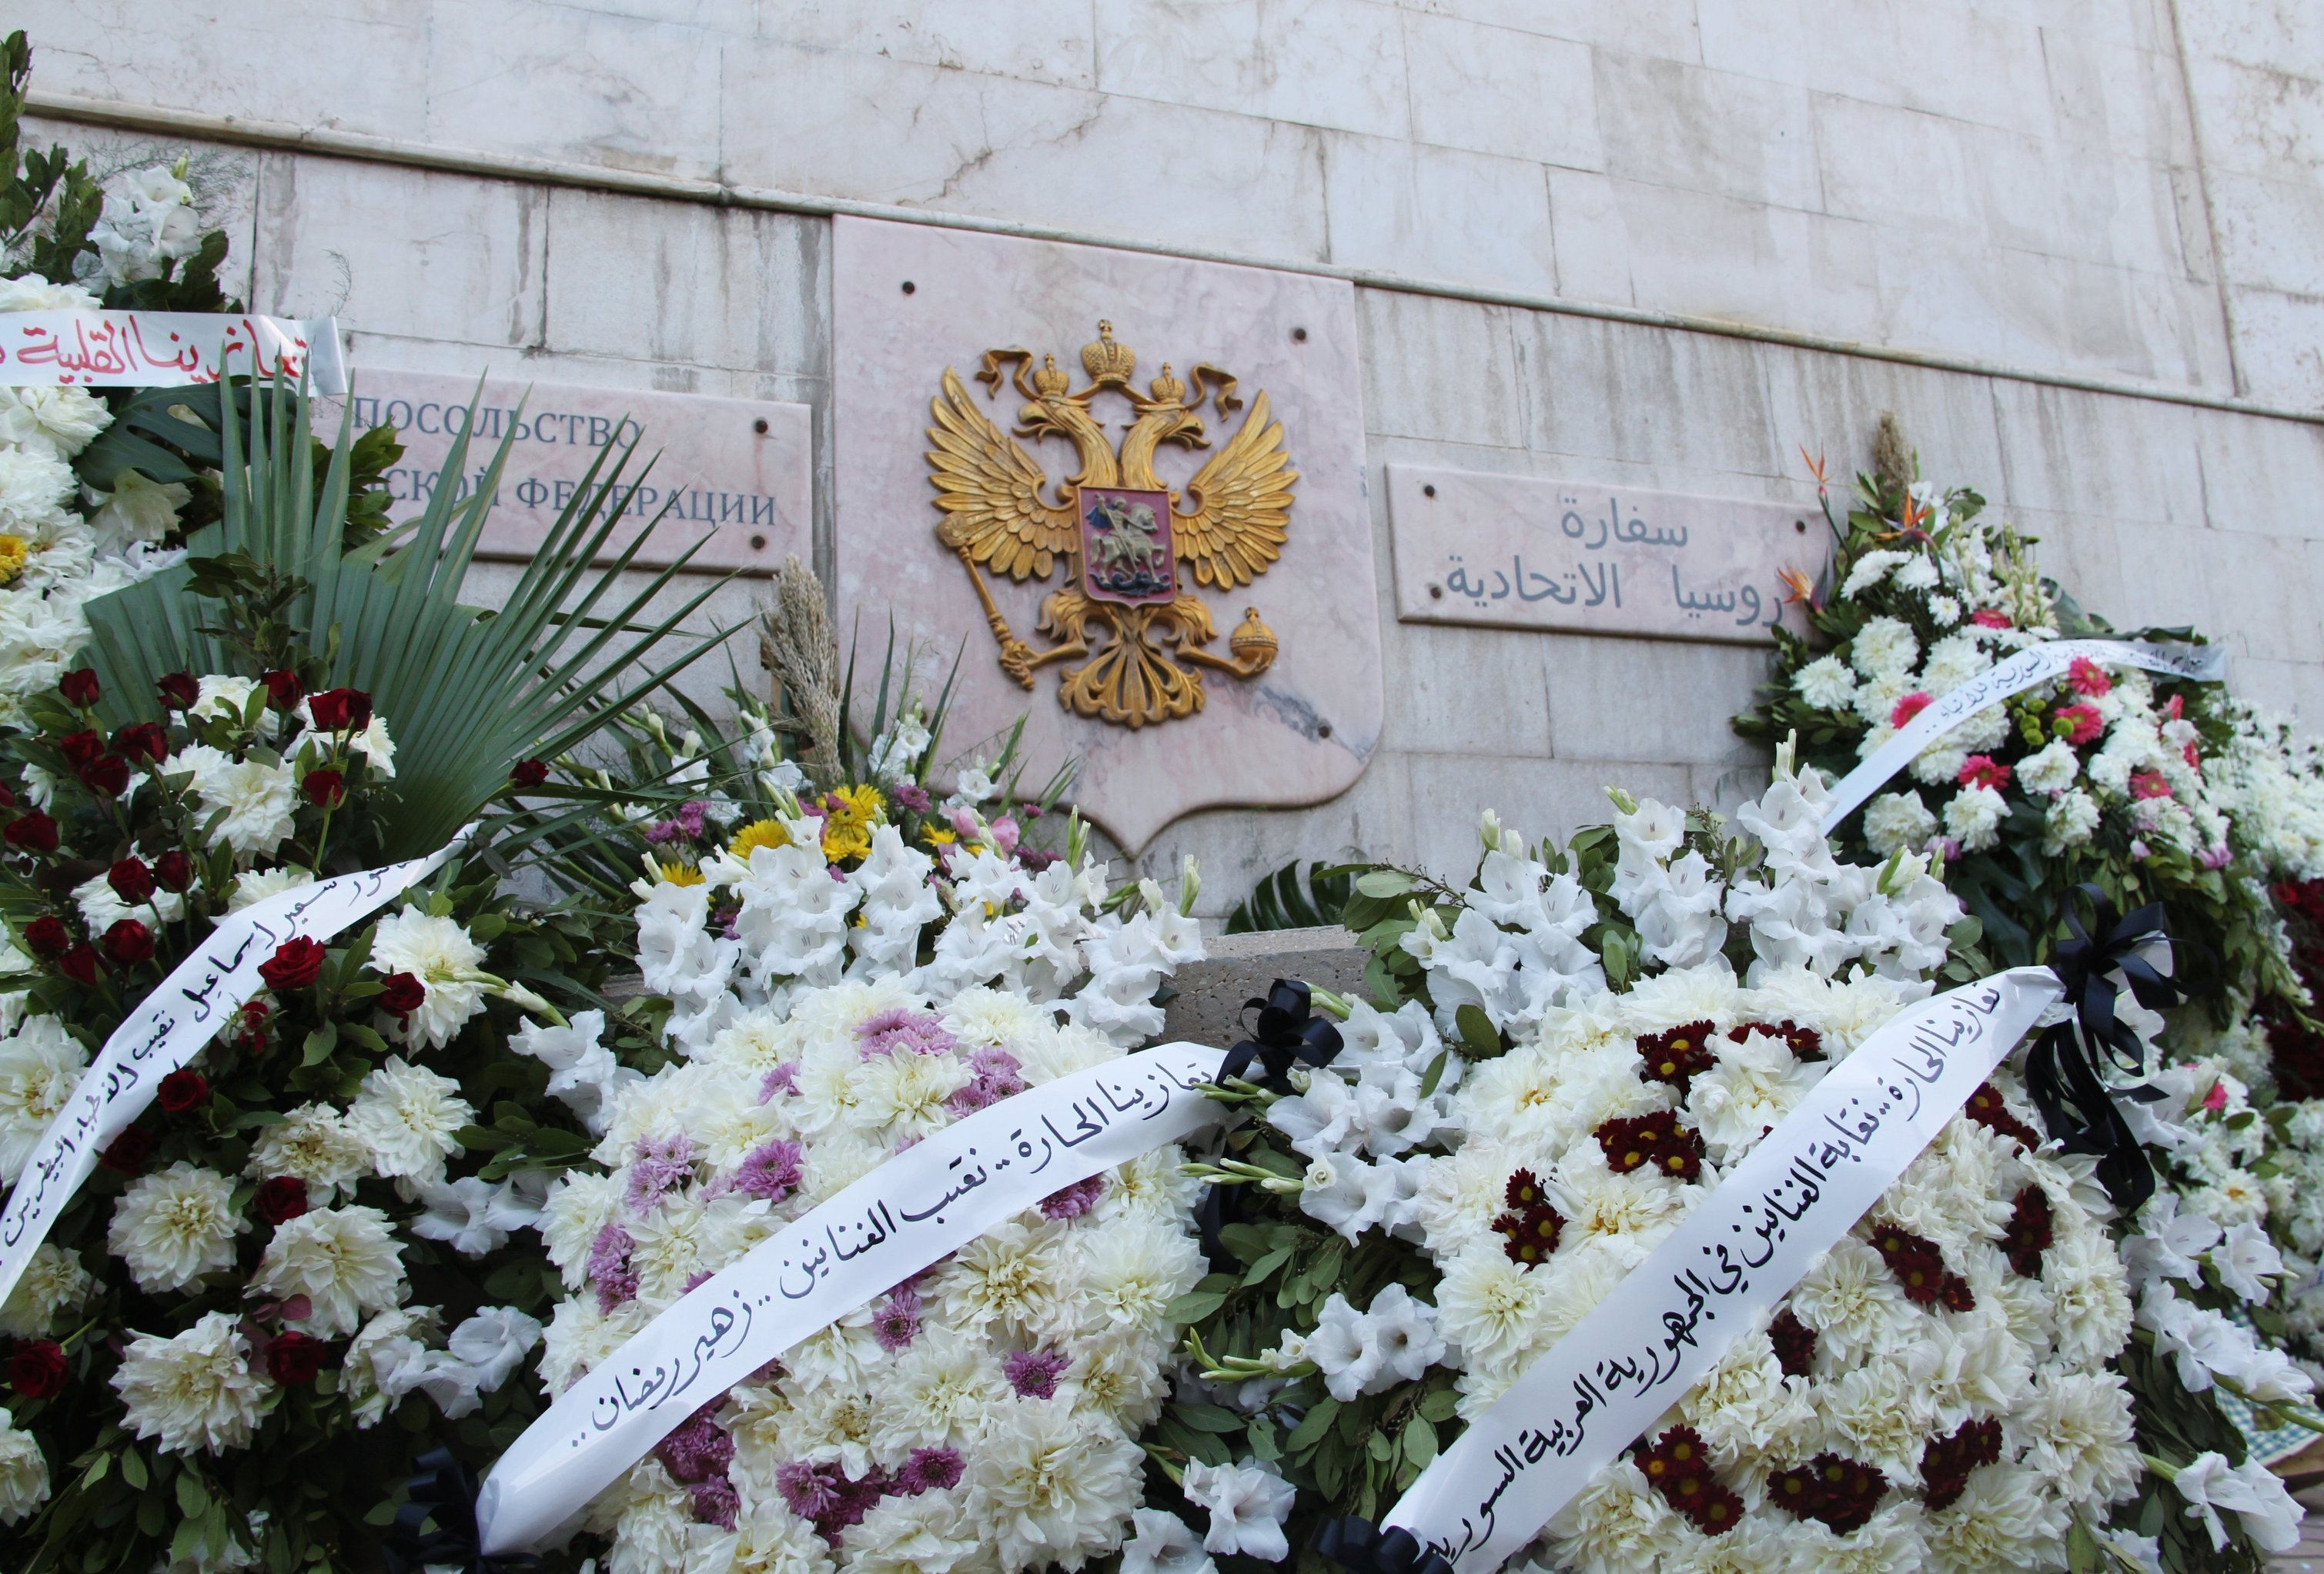 Flower wreaths near the Russian embassy in Damascus brought in memory of those who died in the crash of Kogalymavia Airlines' Airbus A321 plane (Flight 9268) en route from Sharm el-Sheikh to St. Petersburg